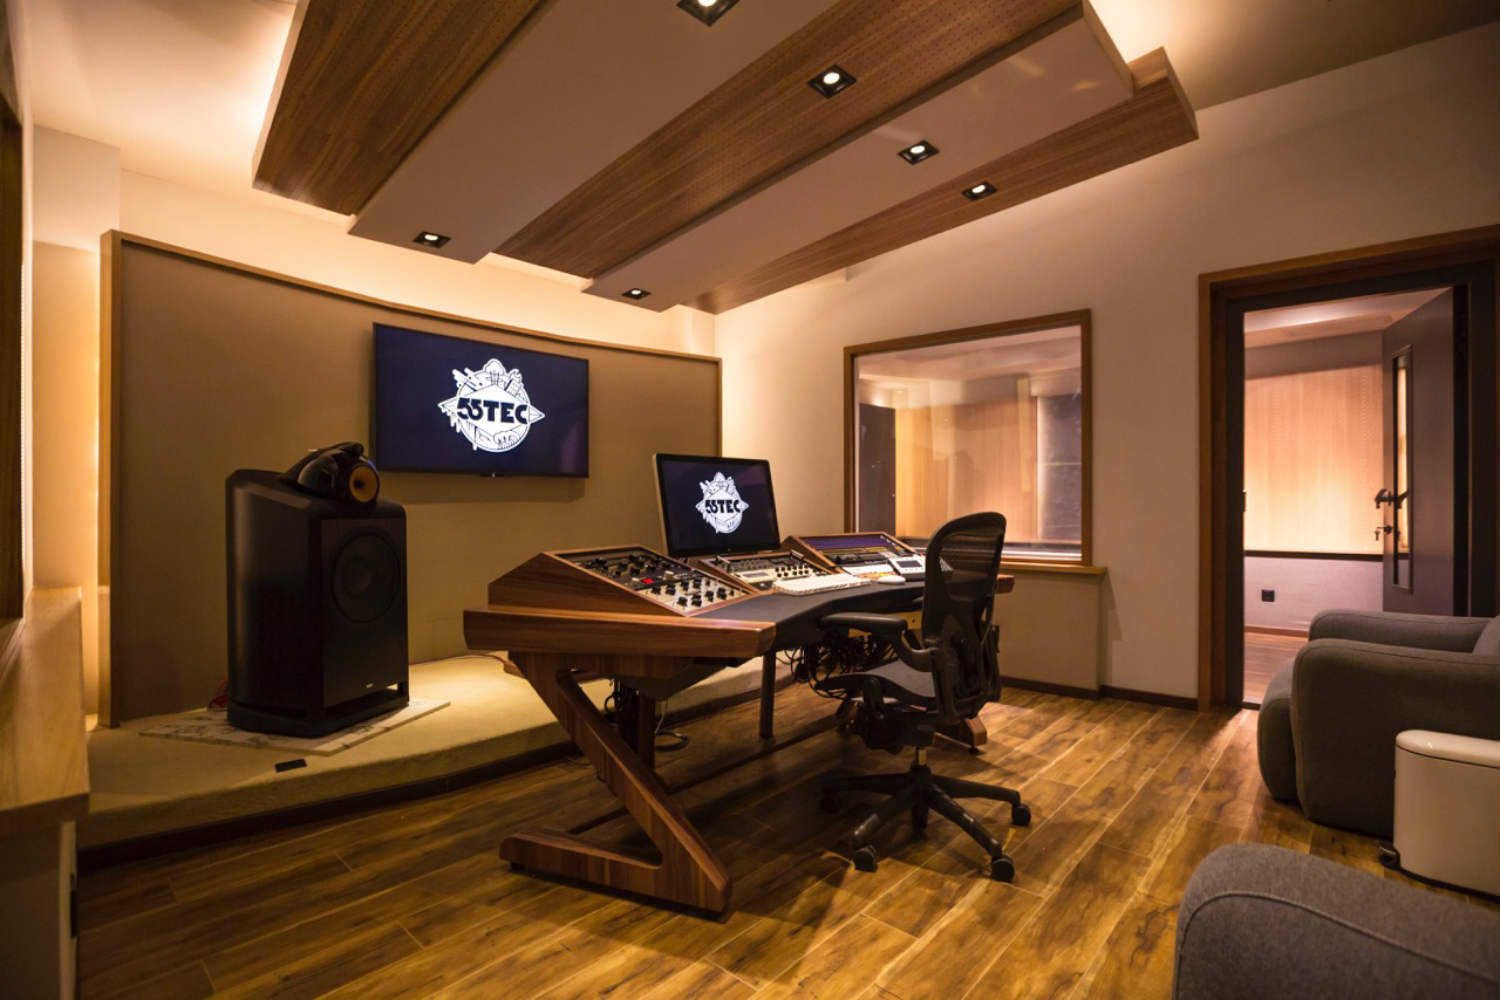 55TEC Studio in Beijing, China - New World-Class Recording Studio designed by WSDG owned by Li You. Control Room B